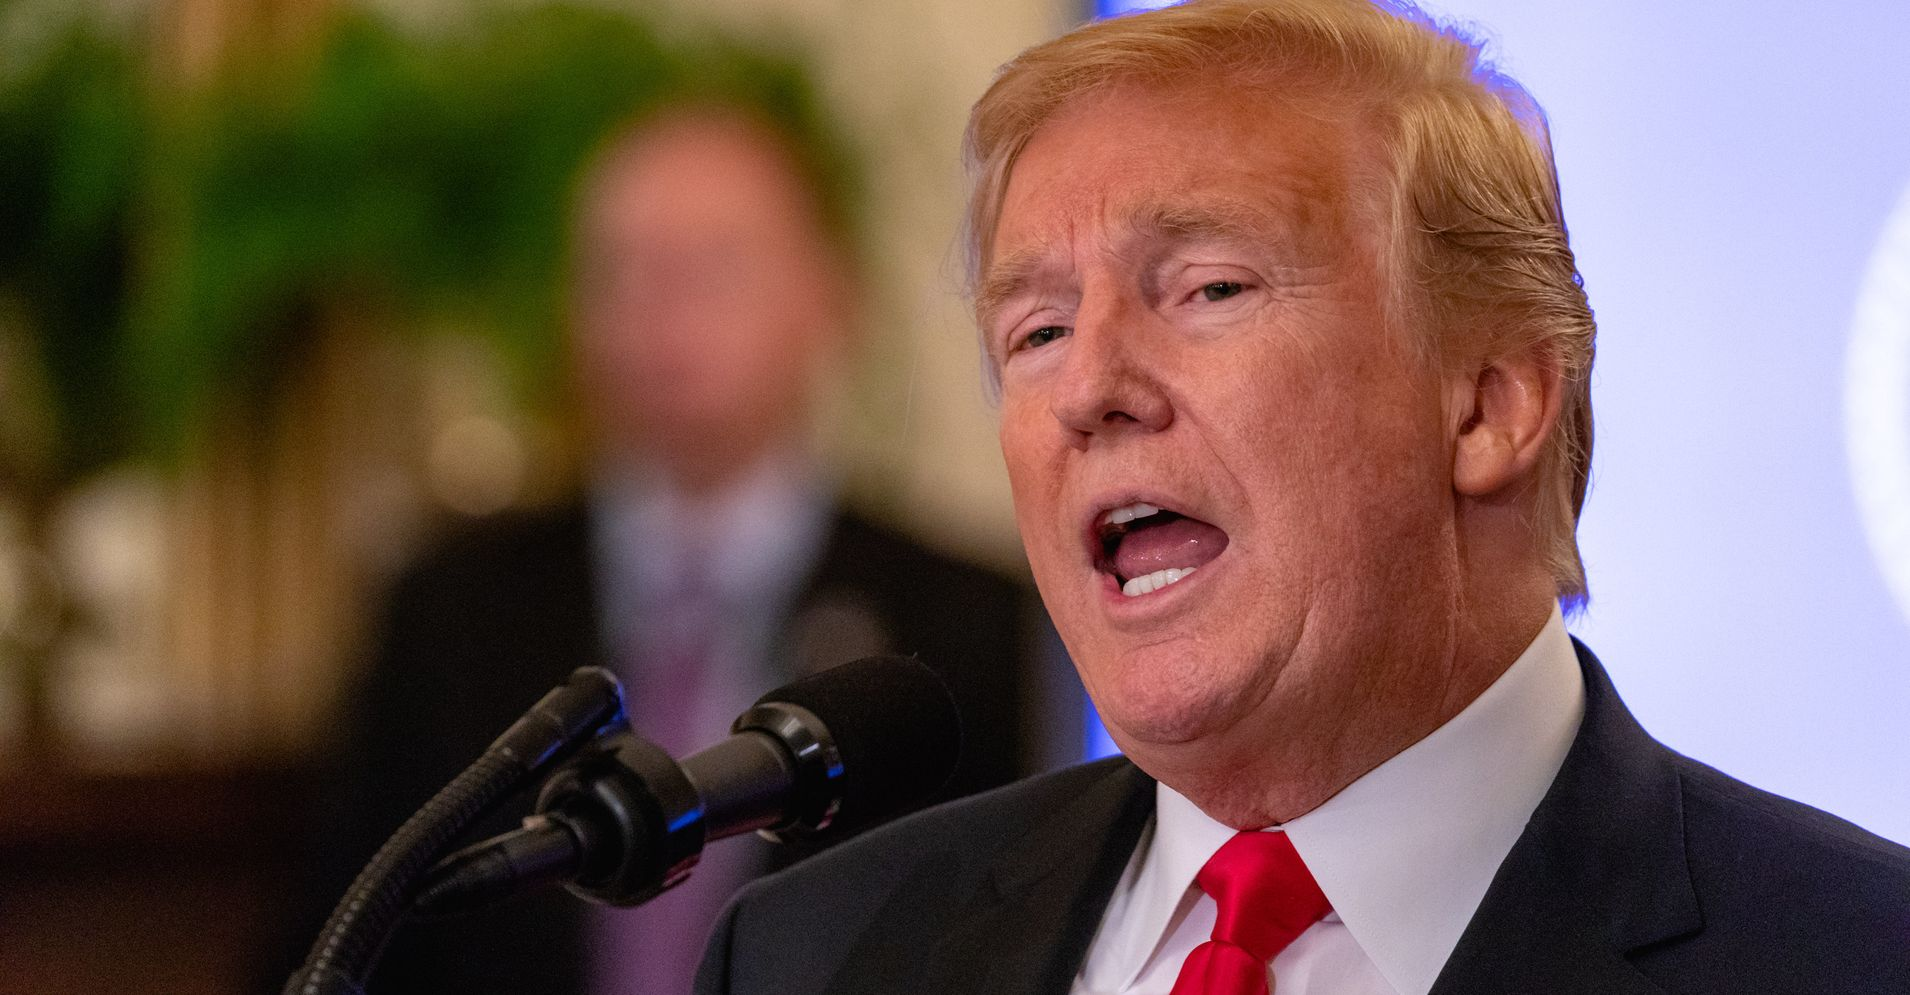 Donald Trump's Boast About Being 'Your Favorite President' Goes Awry